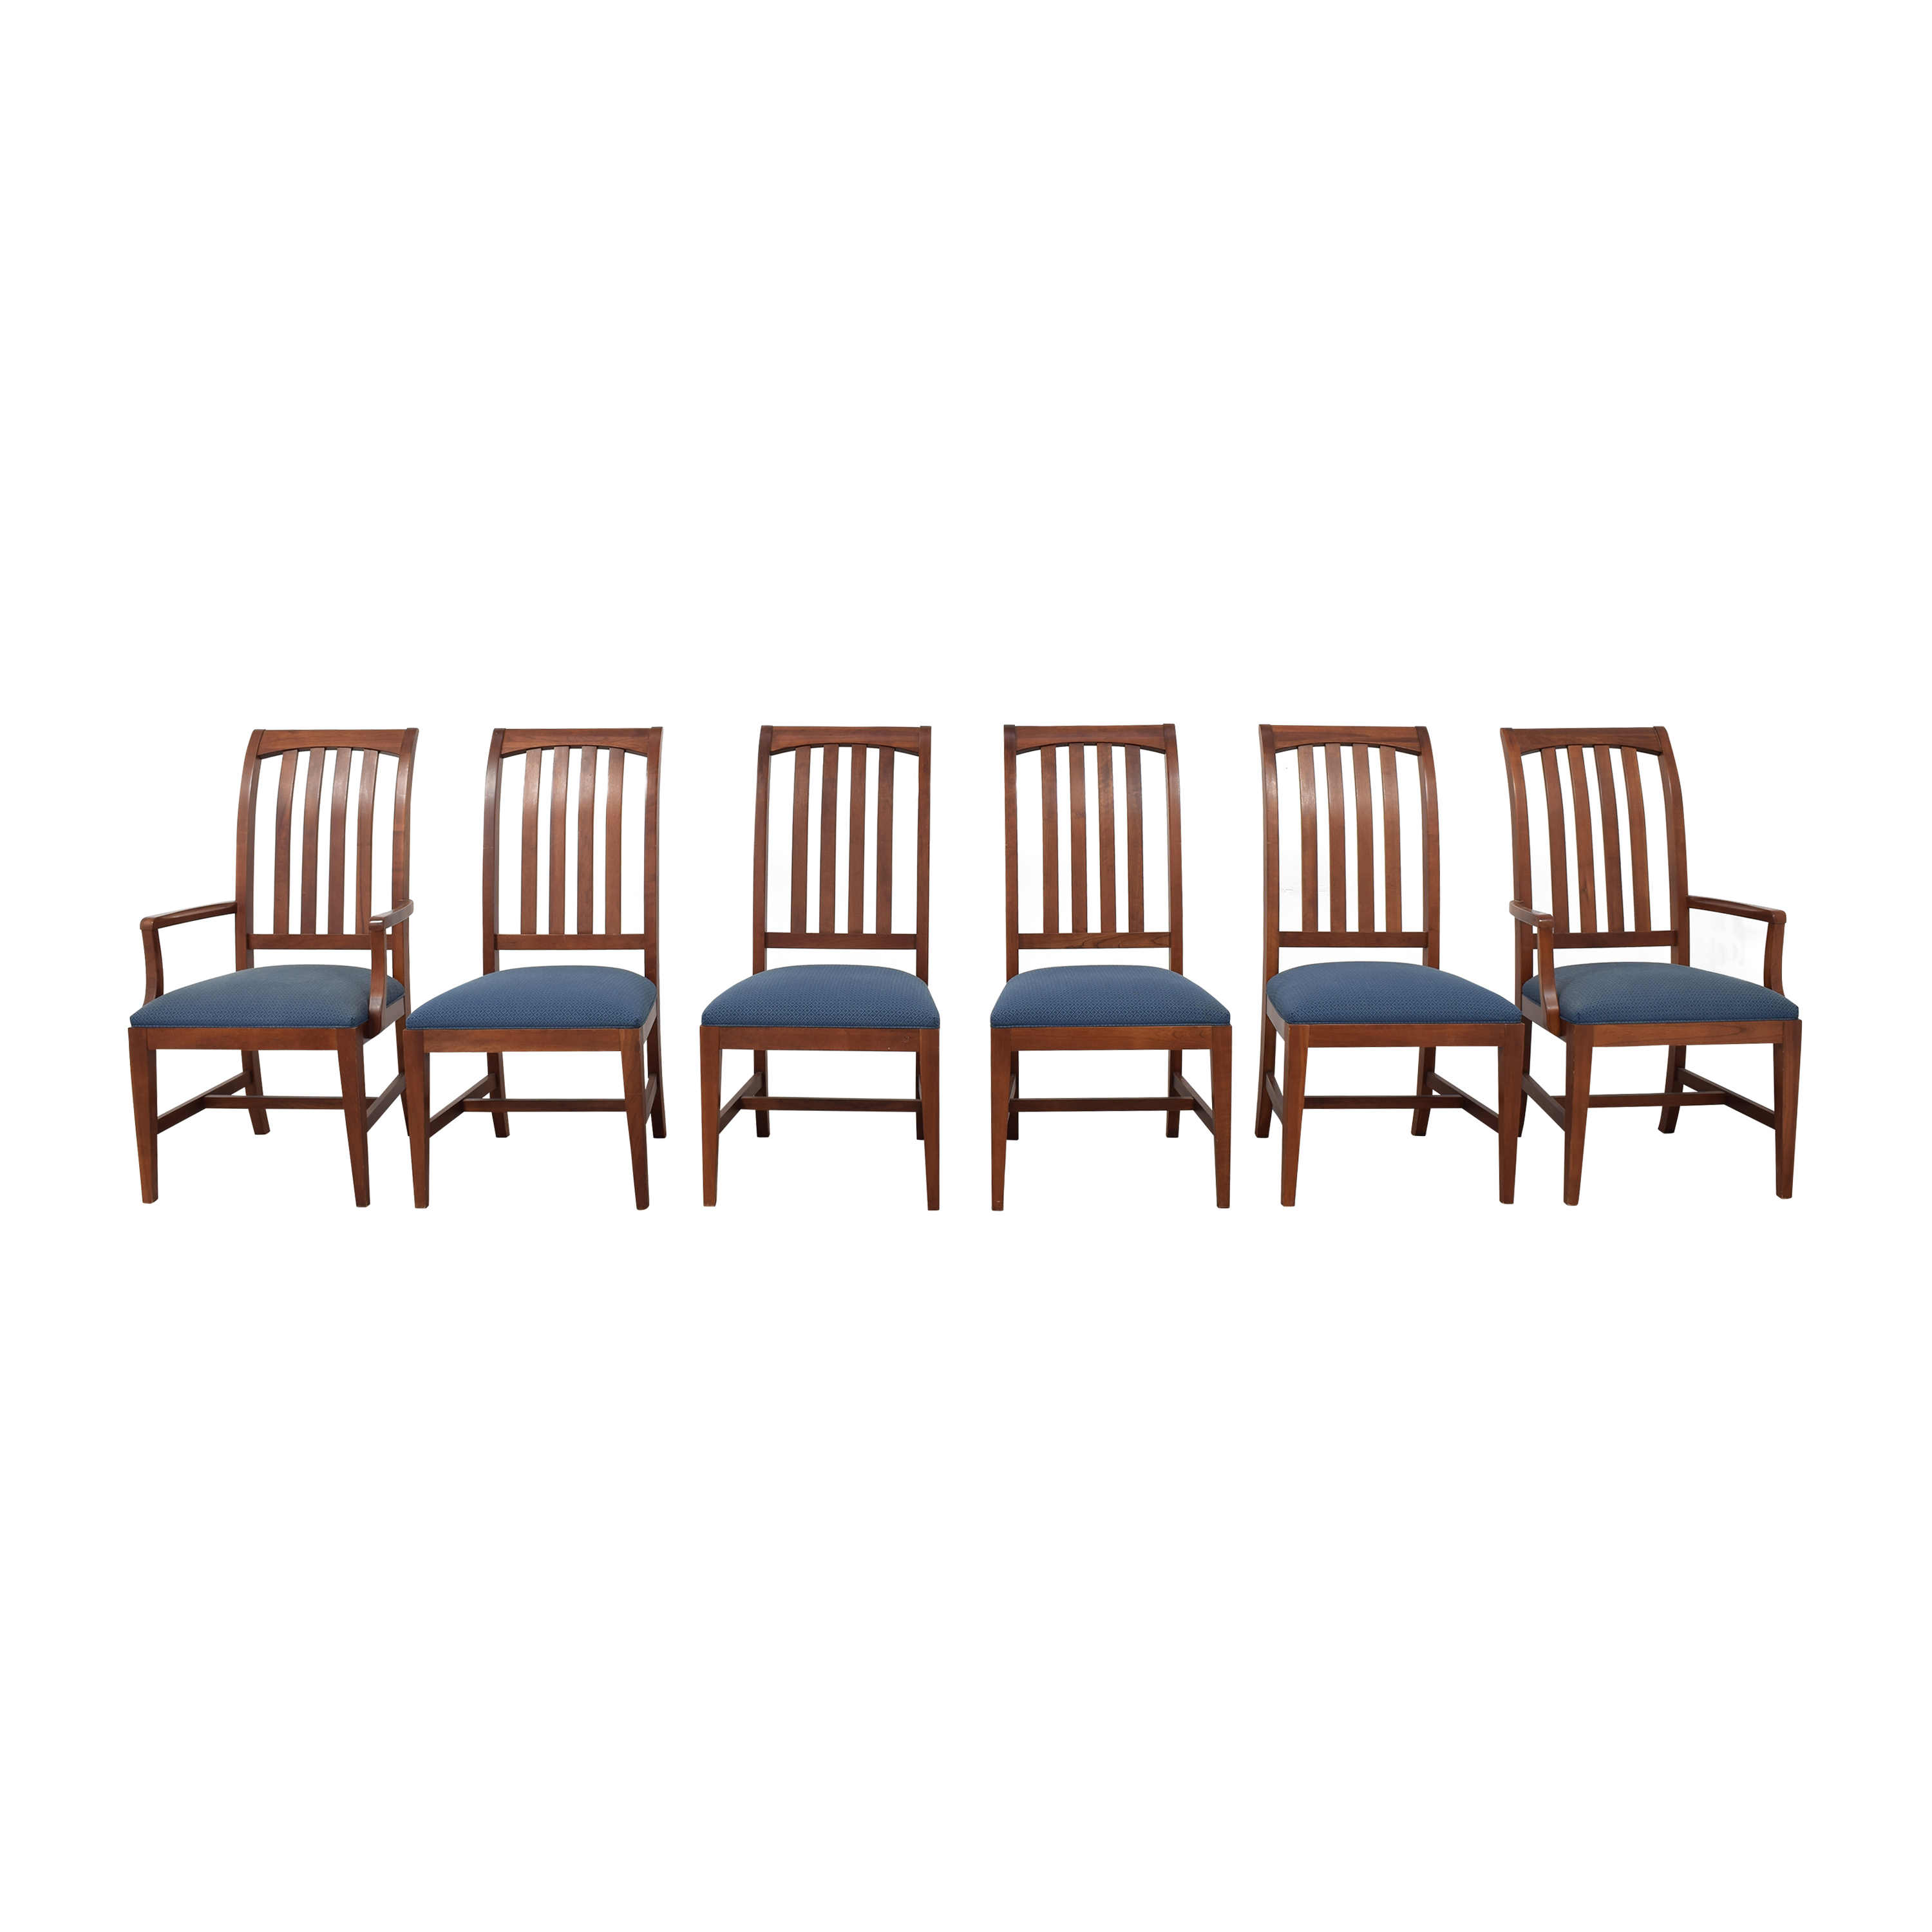 Ethan Allen Ethan Allen American Impressions Dining Chairs  nj